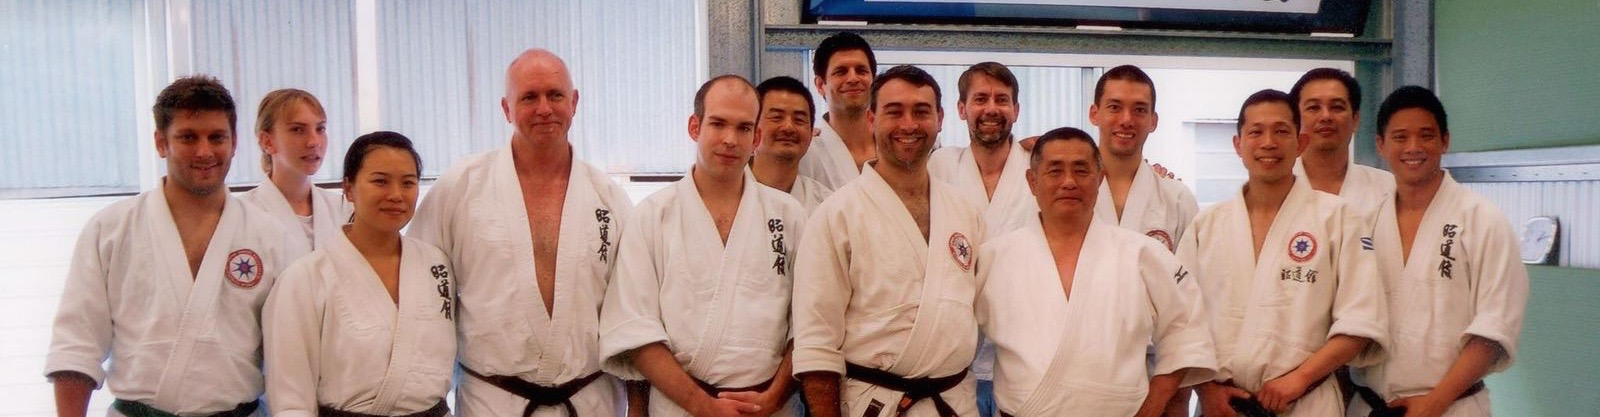 SHIHAN SEMINAR IN BRISBANE